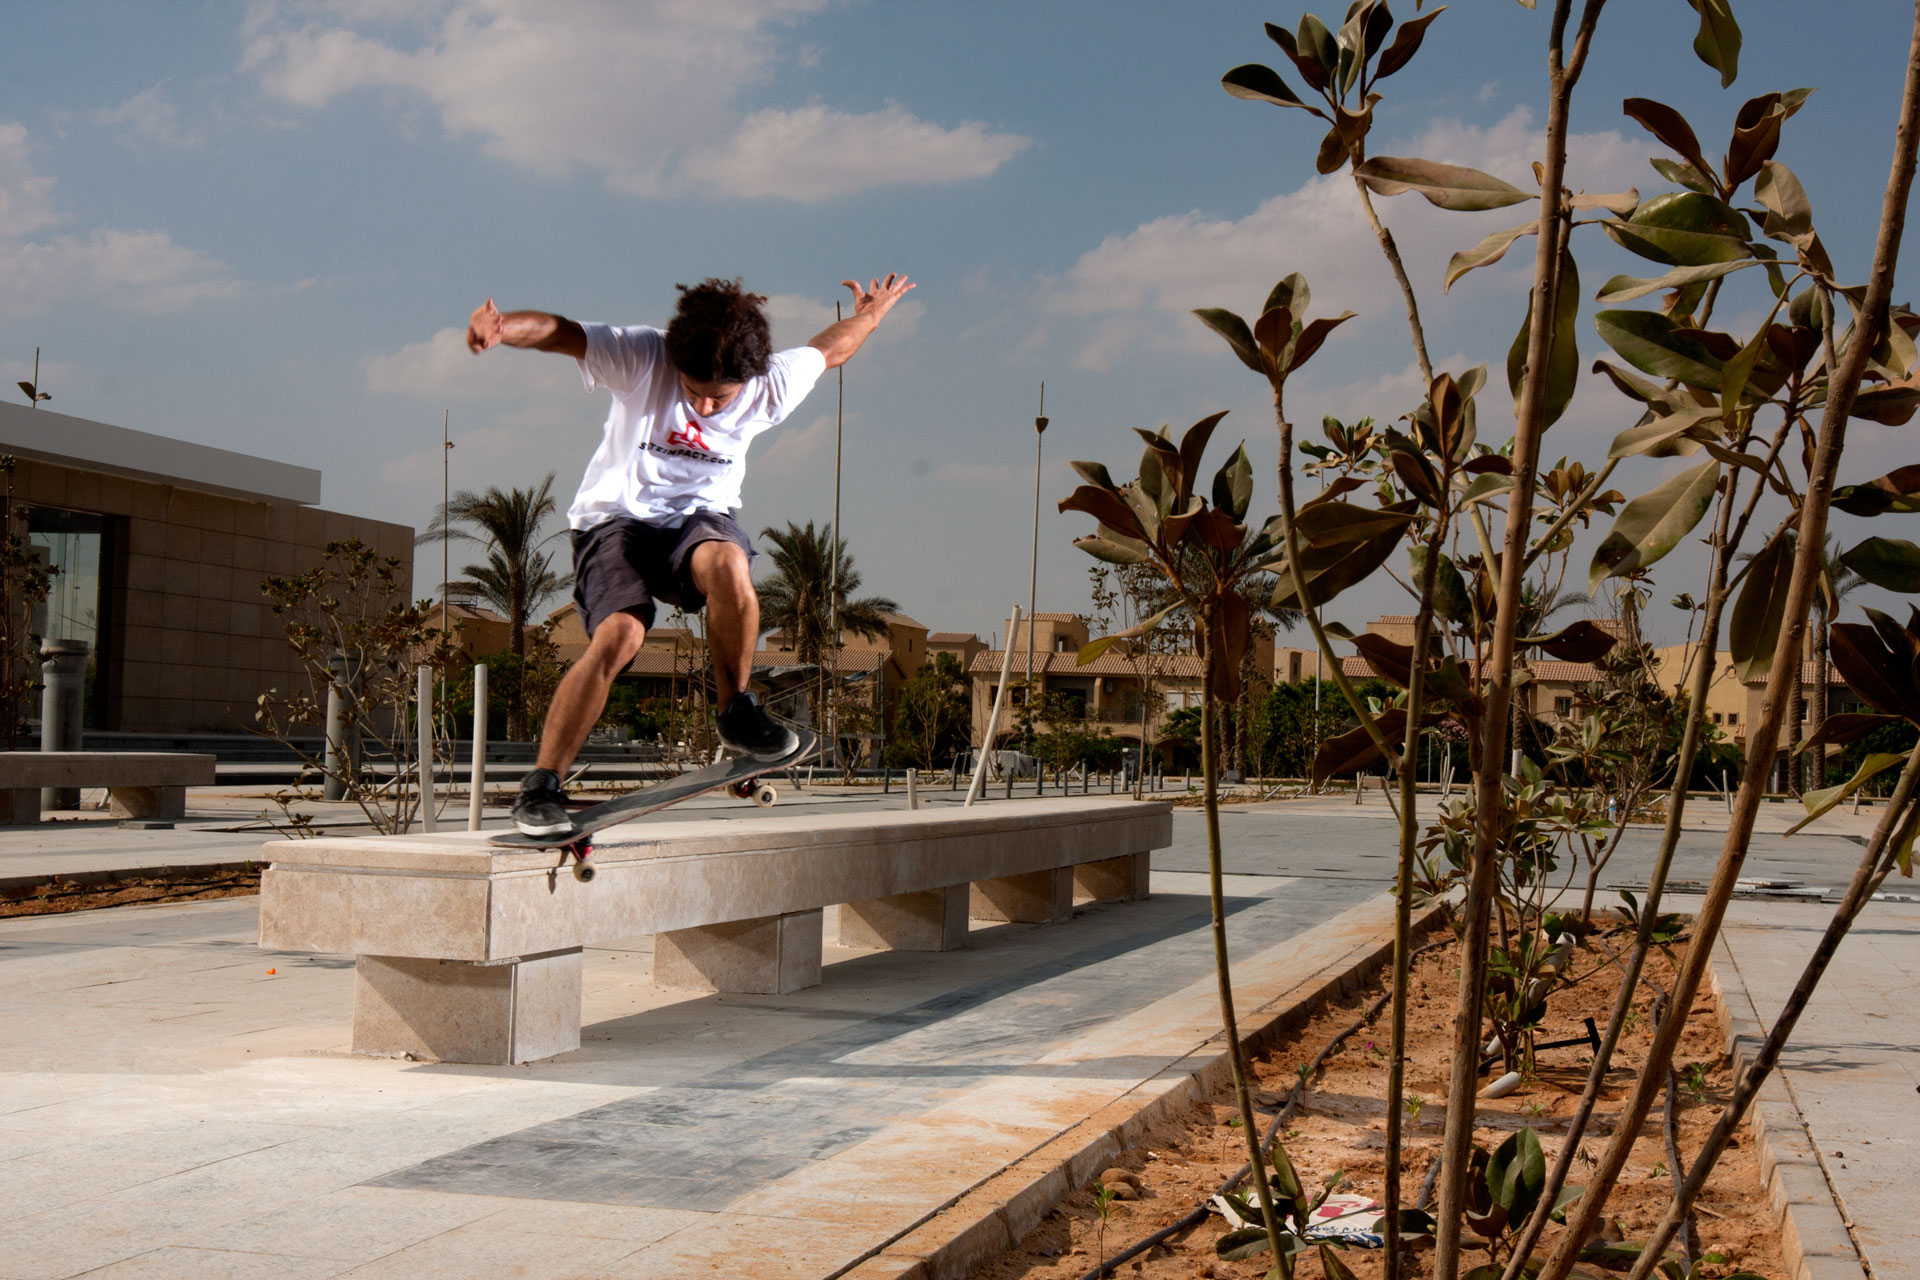 Amin Rida / Backside Croocked / Madinaty Cairo / ph: Cherif Herrawi